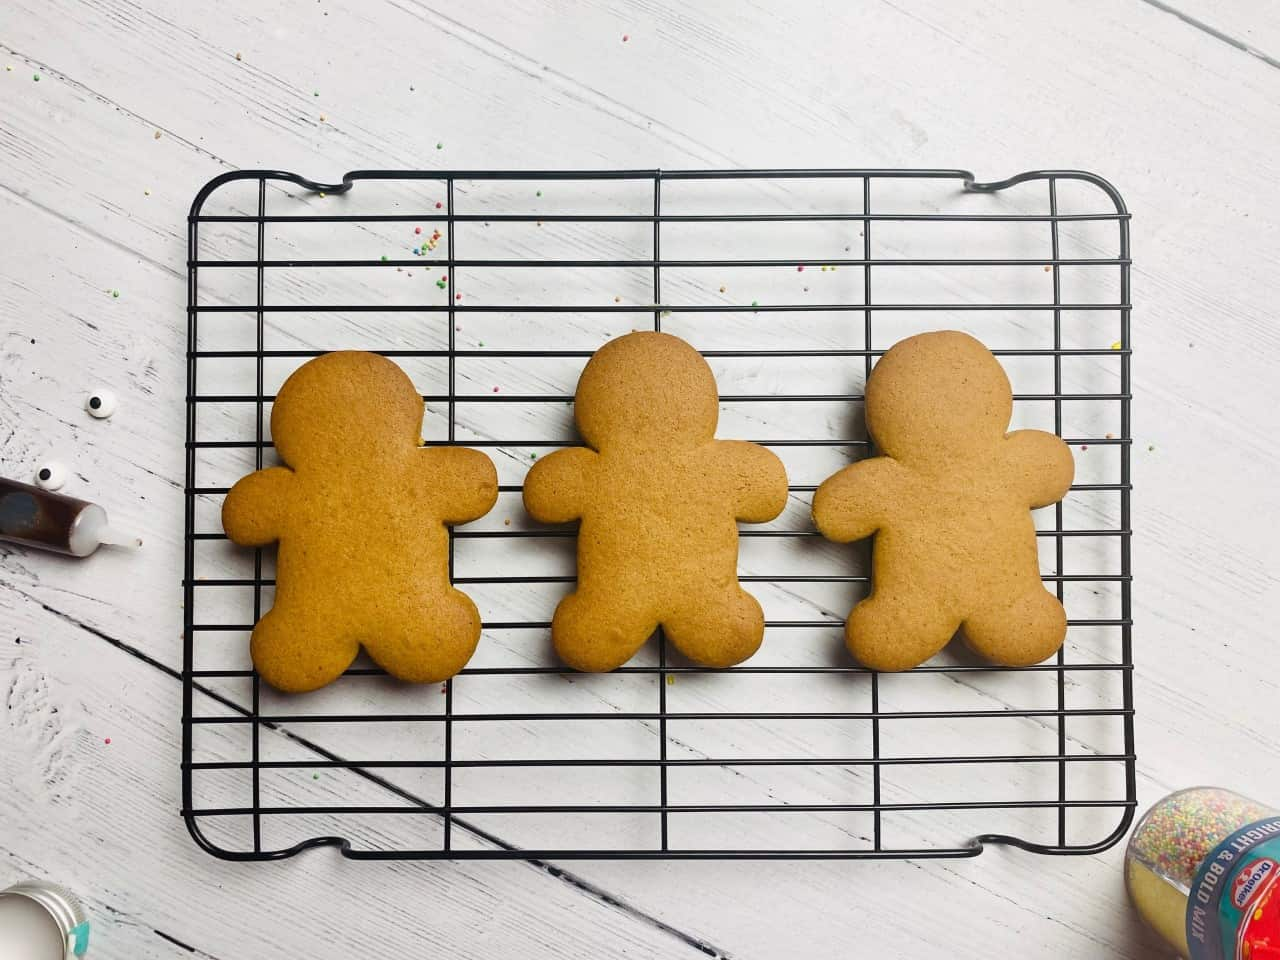 3 plain gingerbread men cooling down on a wire rack ready to be decorated